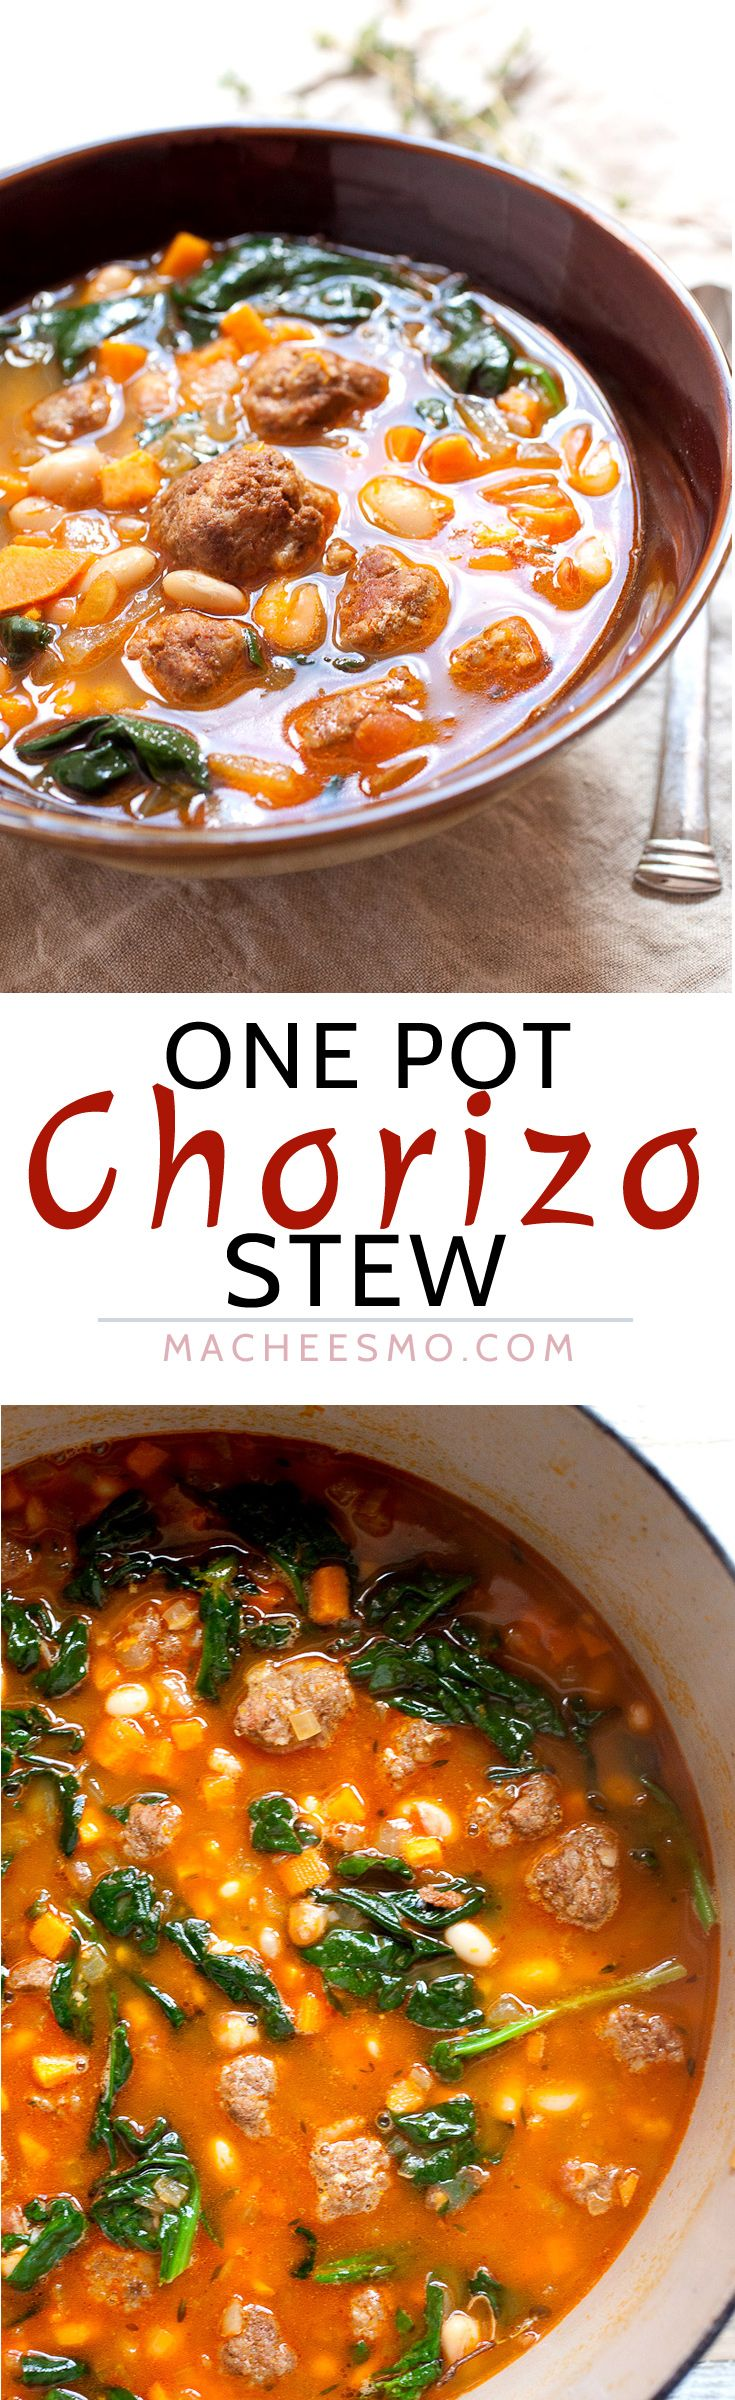 One Pot Chorizo Yam Stew: This is one of the most flavorful stews you'll make this year and everything just goes in one pot! The order is important though! Chorizo, yams, white beans, spinach. Perfect for winter! | macheesmo.com